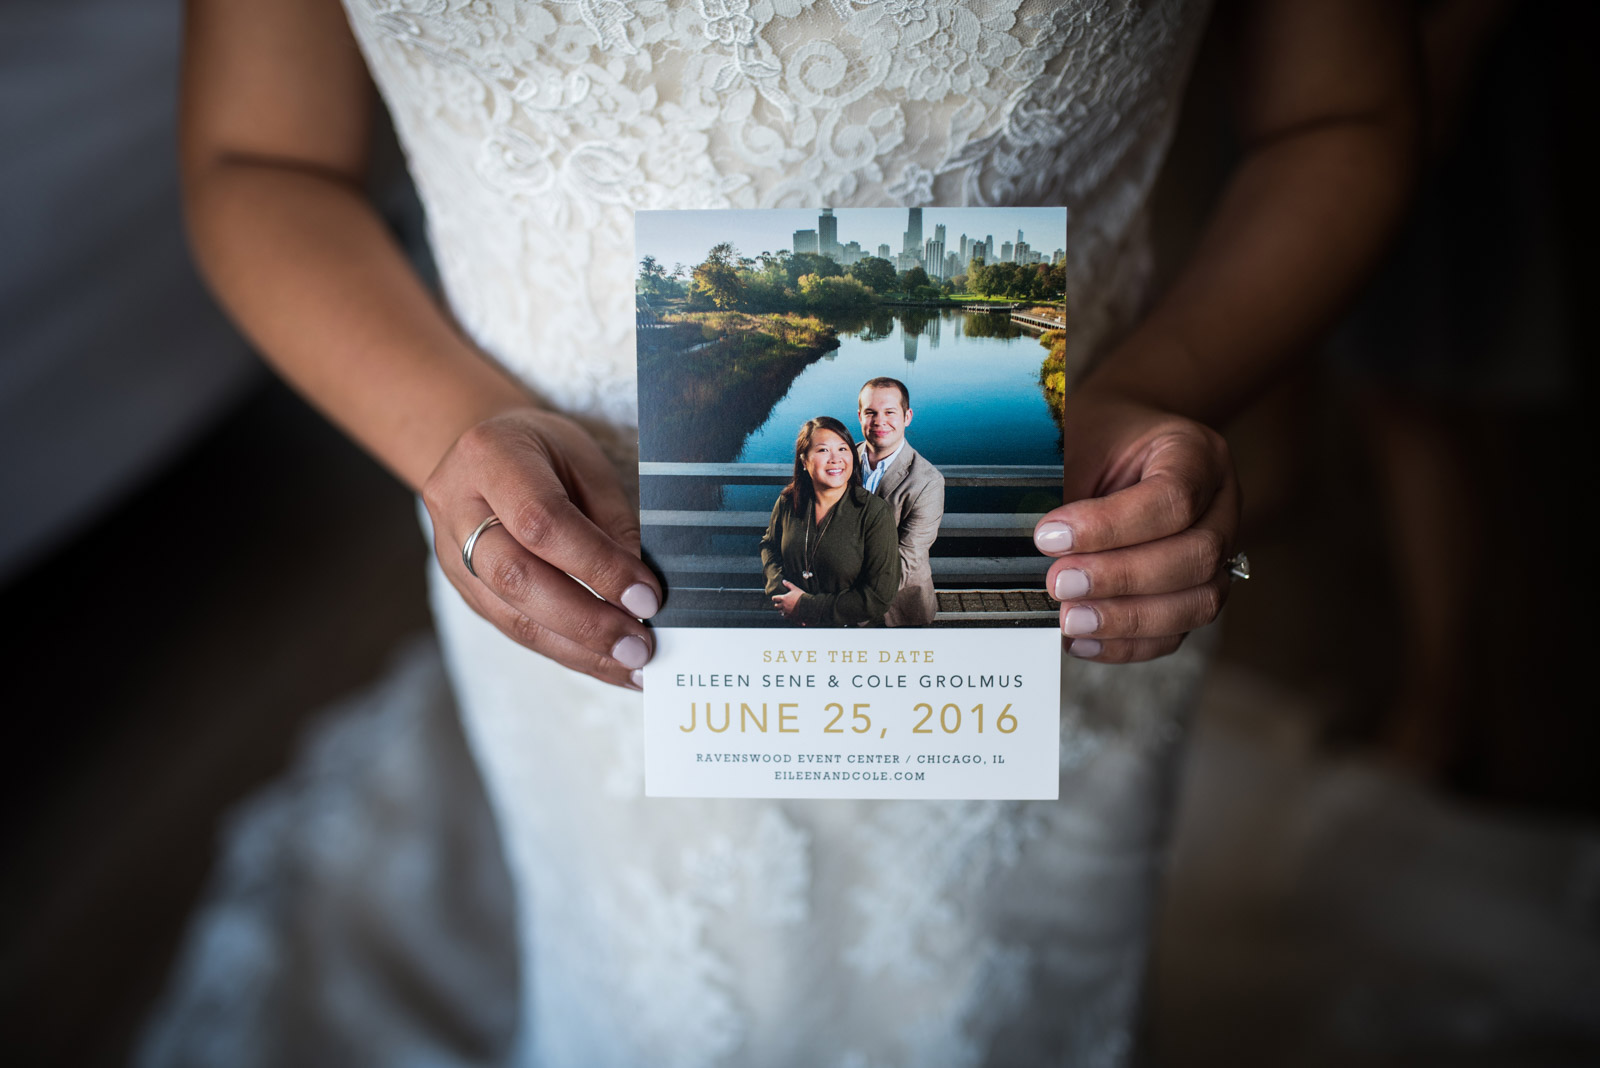 Bride holding save the date during wedding day preparation